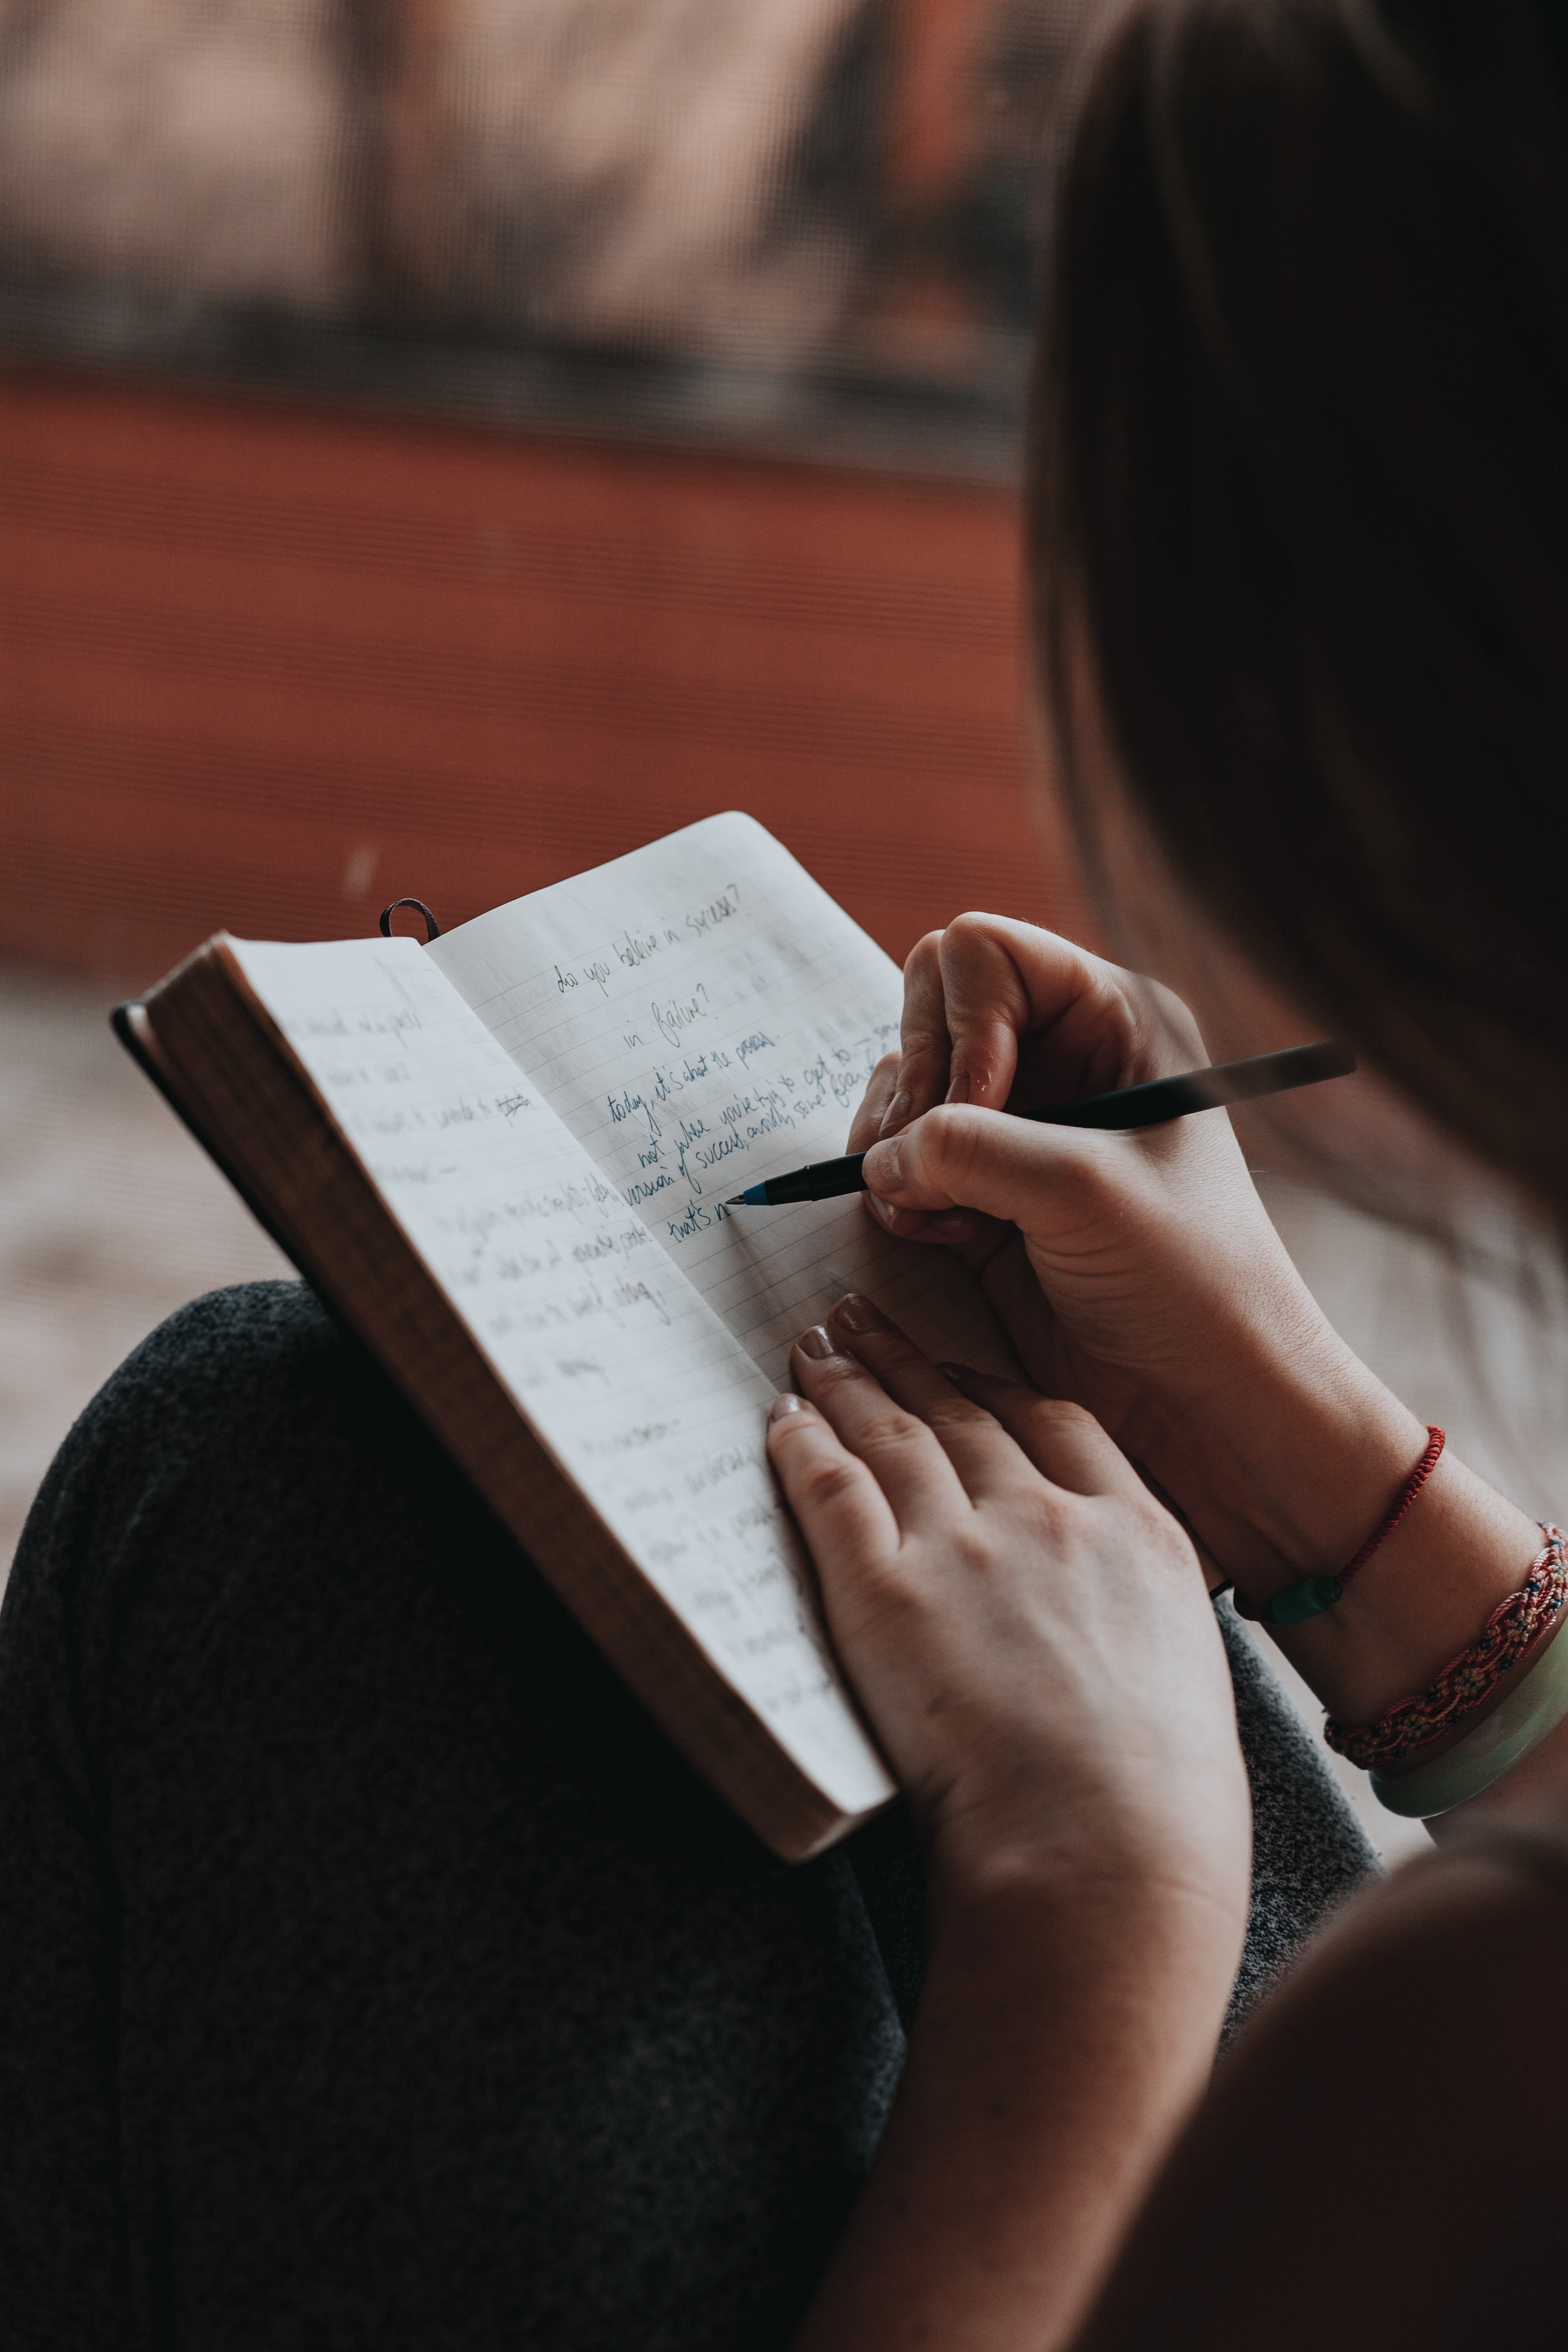 Professional writer writing in their notebook with a pen